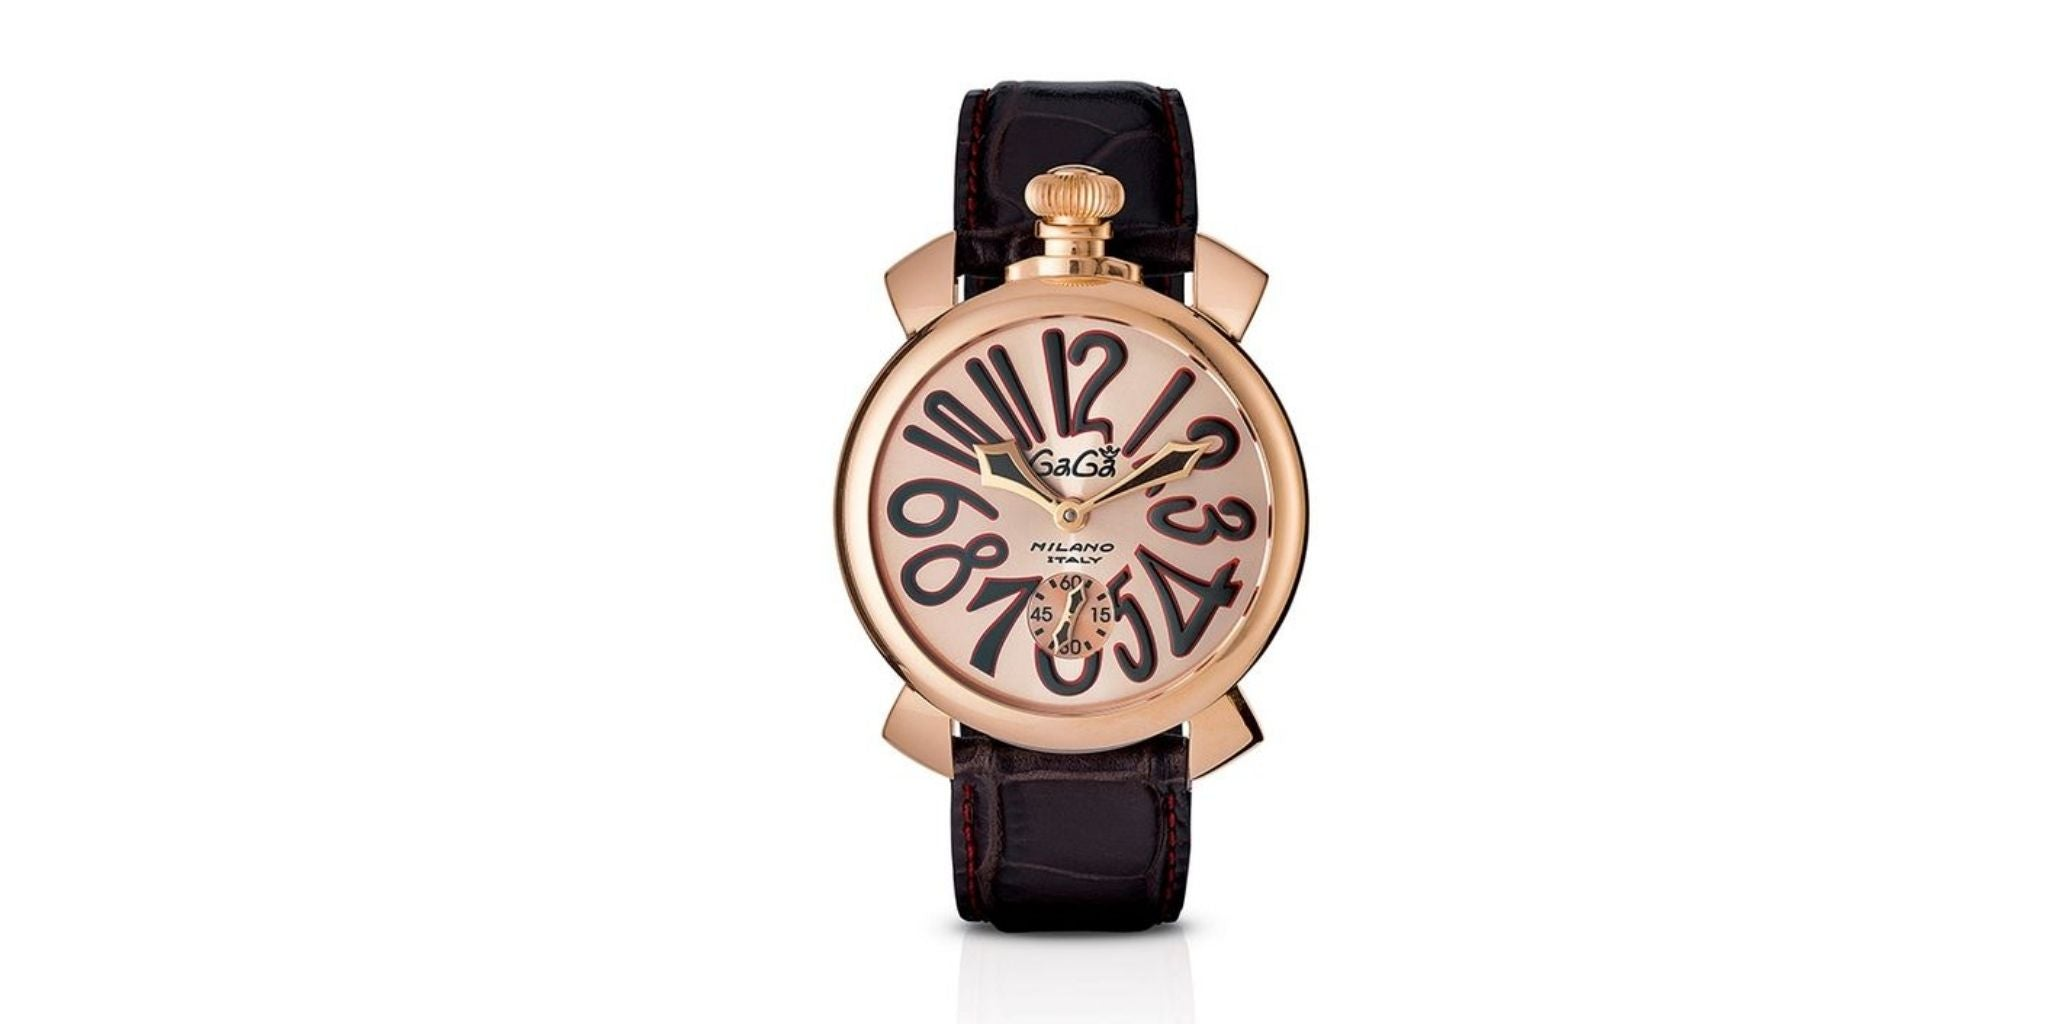 GaGà Milano Mechanical Watch Manuale Rose 48MM Rose Gold Plated 5011.11S, Best Watch Brands for Women, Best Watches For Women, Best Women's Watches, Best Women's Watches 2020, Ladies Watches, Quality Women's Watches,